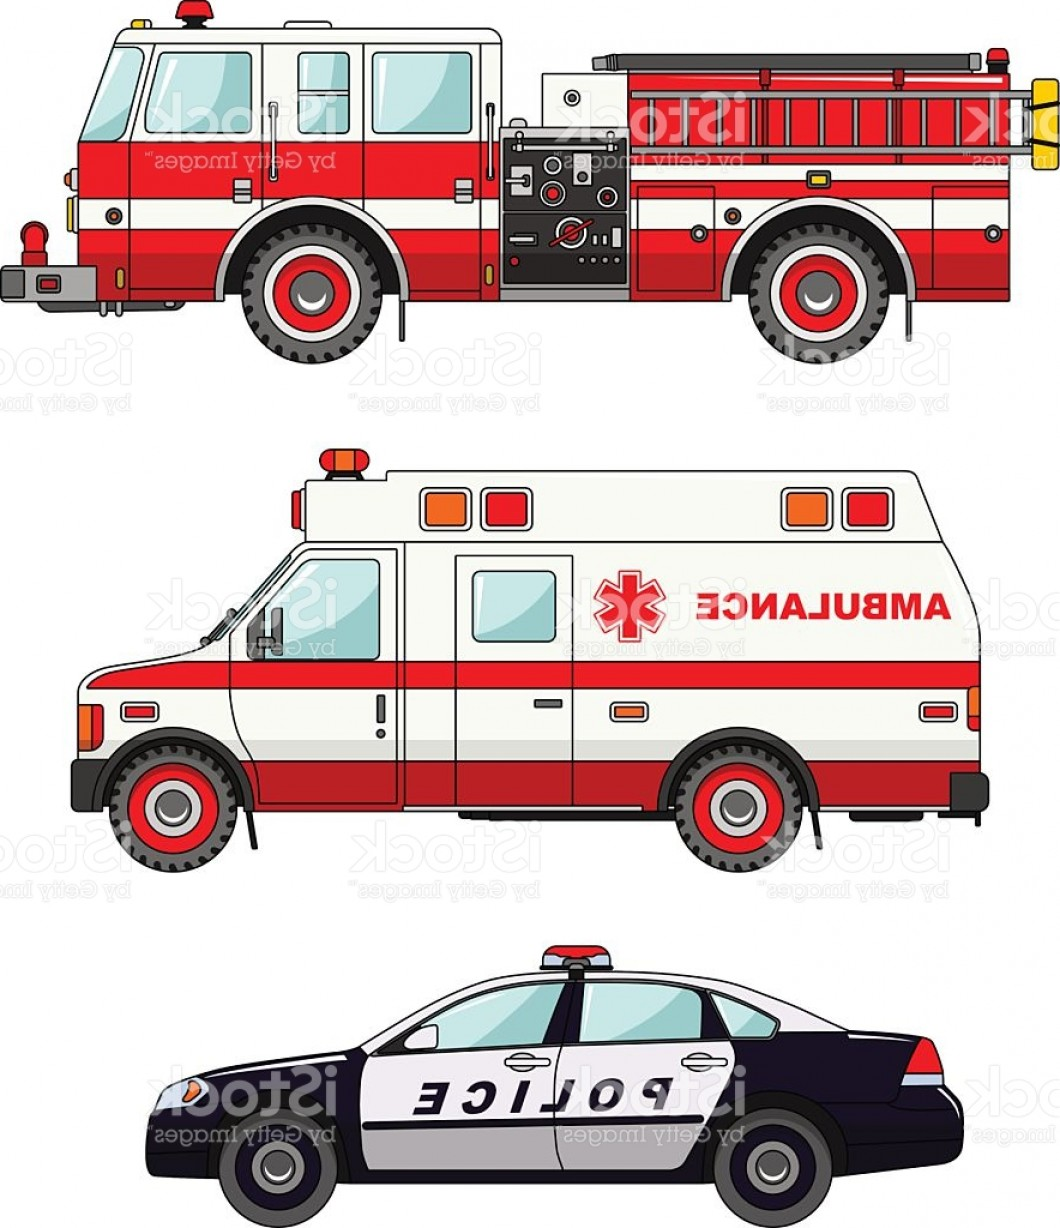 Fire Truck Vector Art: Fire Truck Police And Ambulance Cars Isolated On White Background Gm